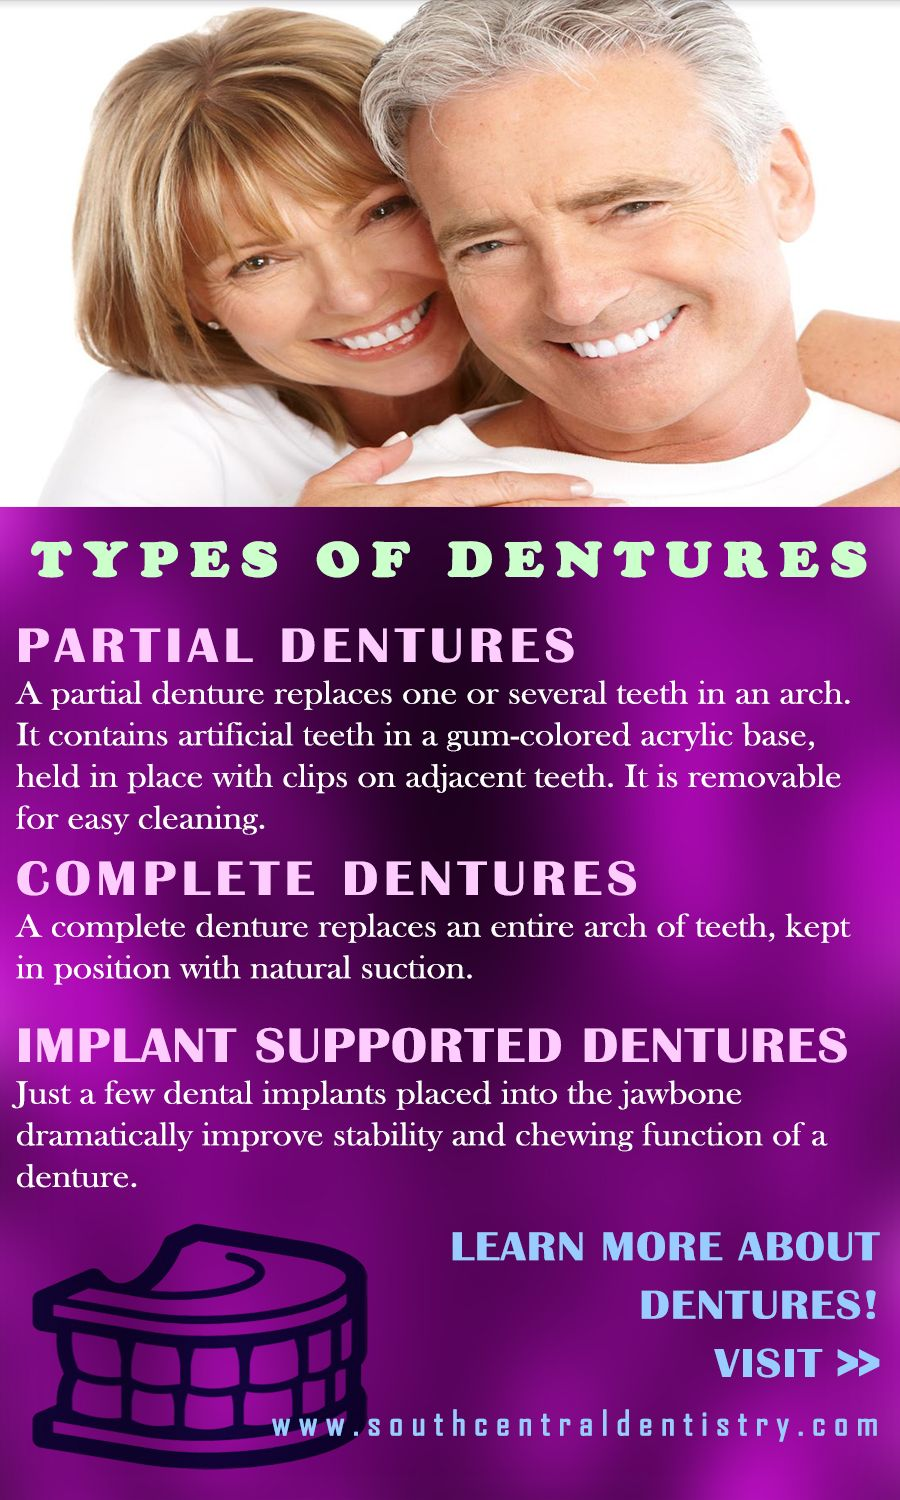 Higher Level Stability Through Implant Supported Dentures Now Available With Dentist Dr Jerome Caouette At South Central Denti Stay Young Dentistry Dentures